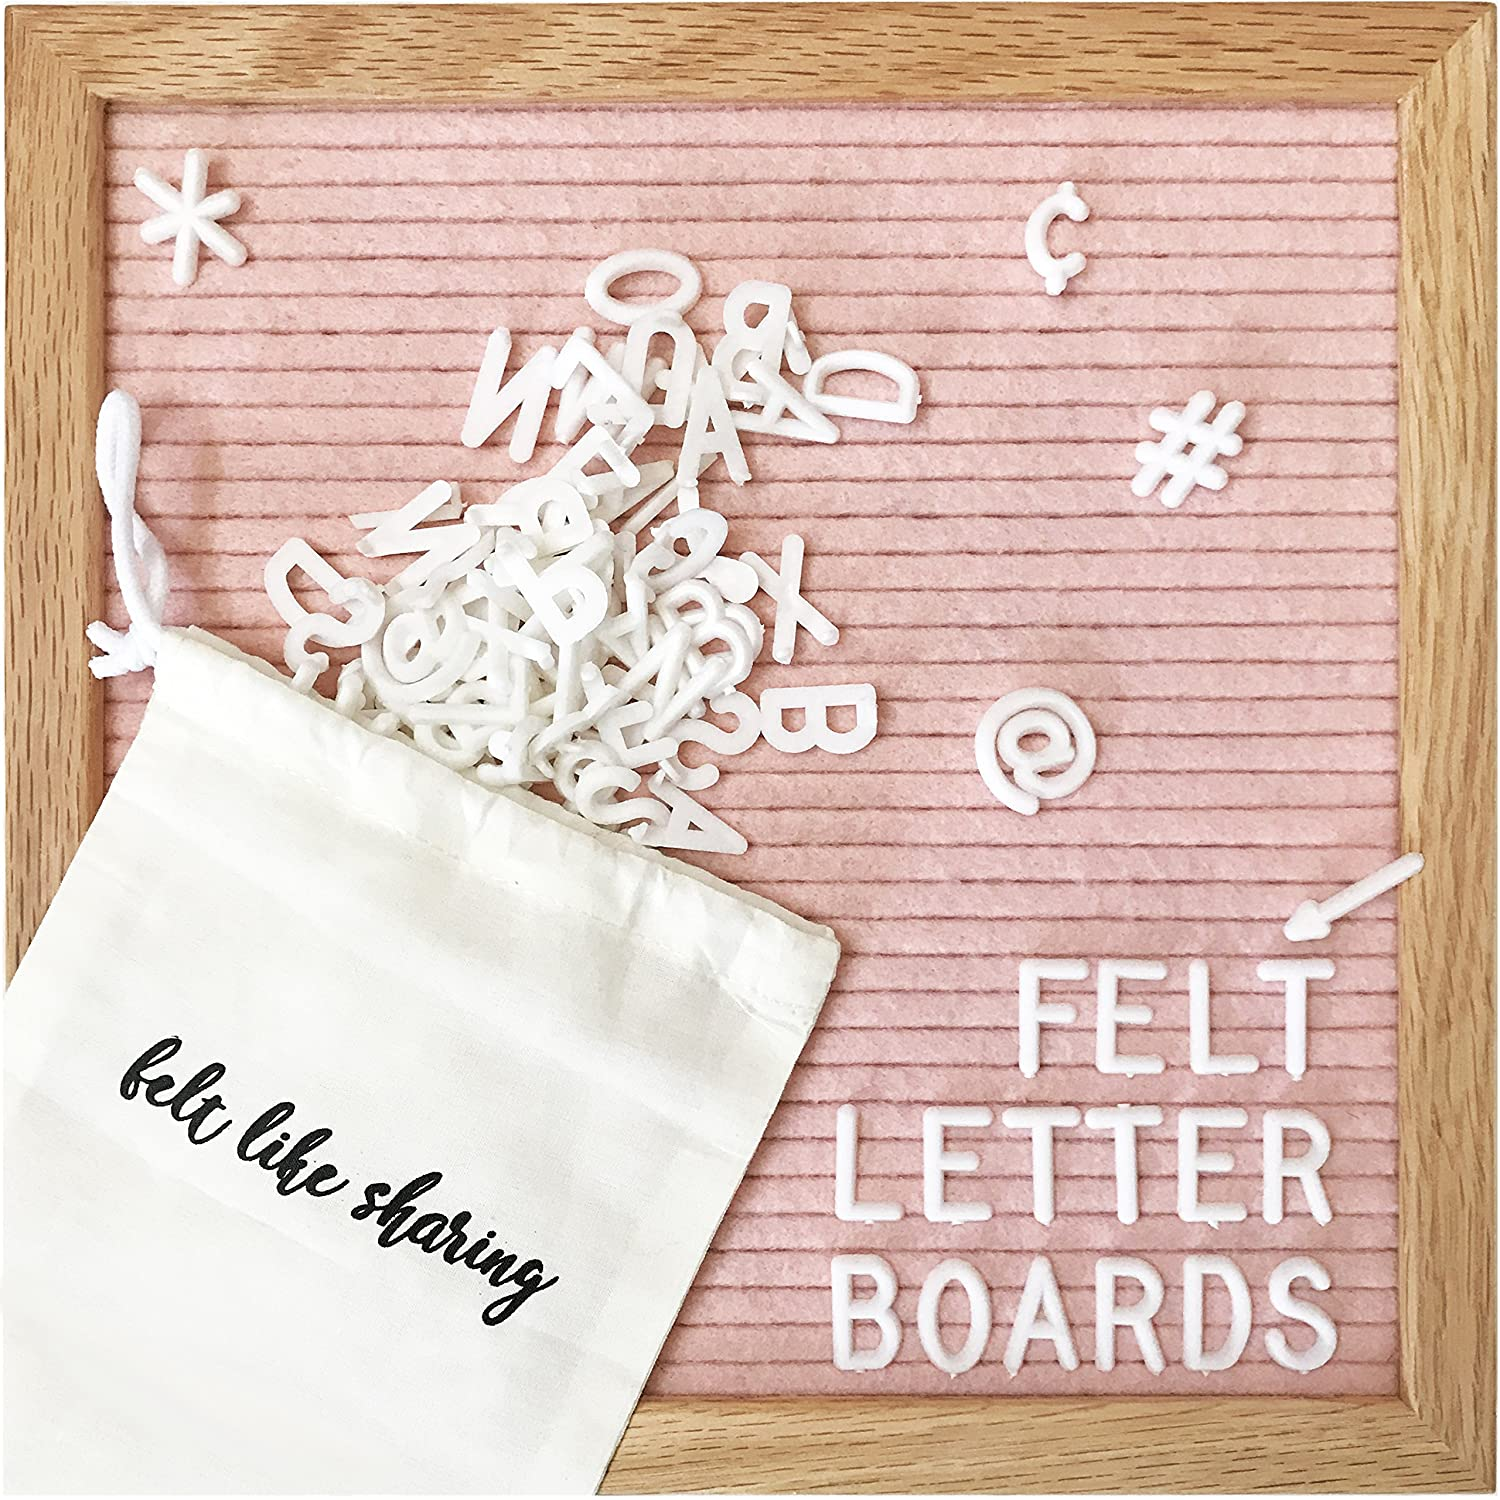 Amazon.com : Light Pink Felt Letter Board 10x10 Inches. Changeable ...